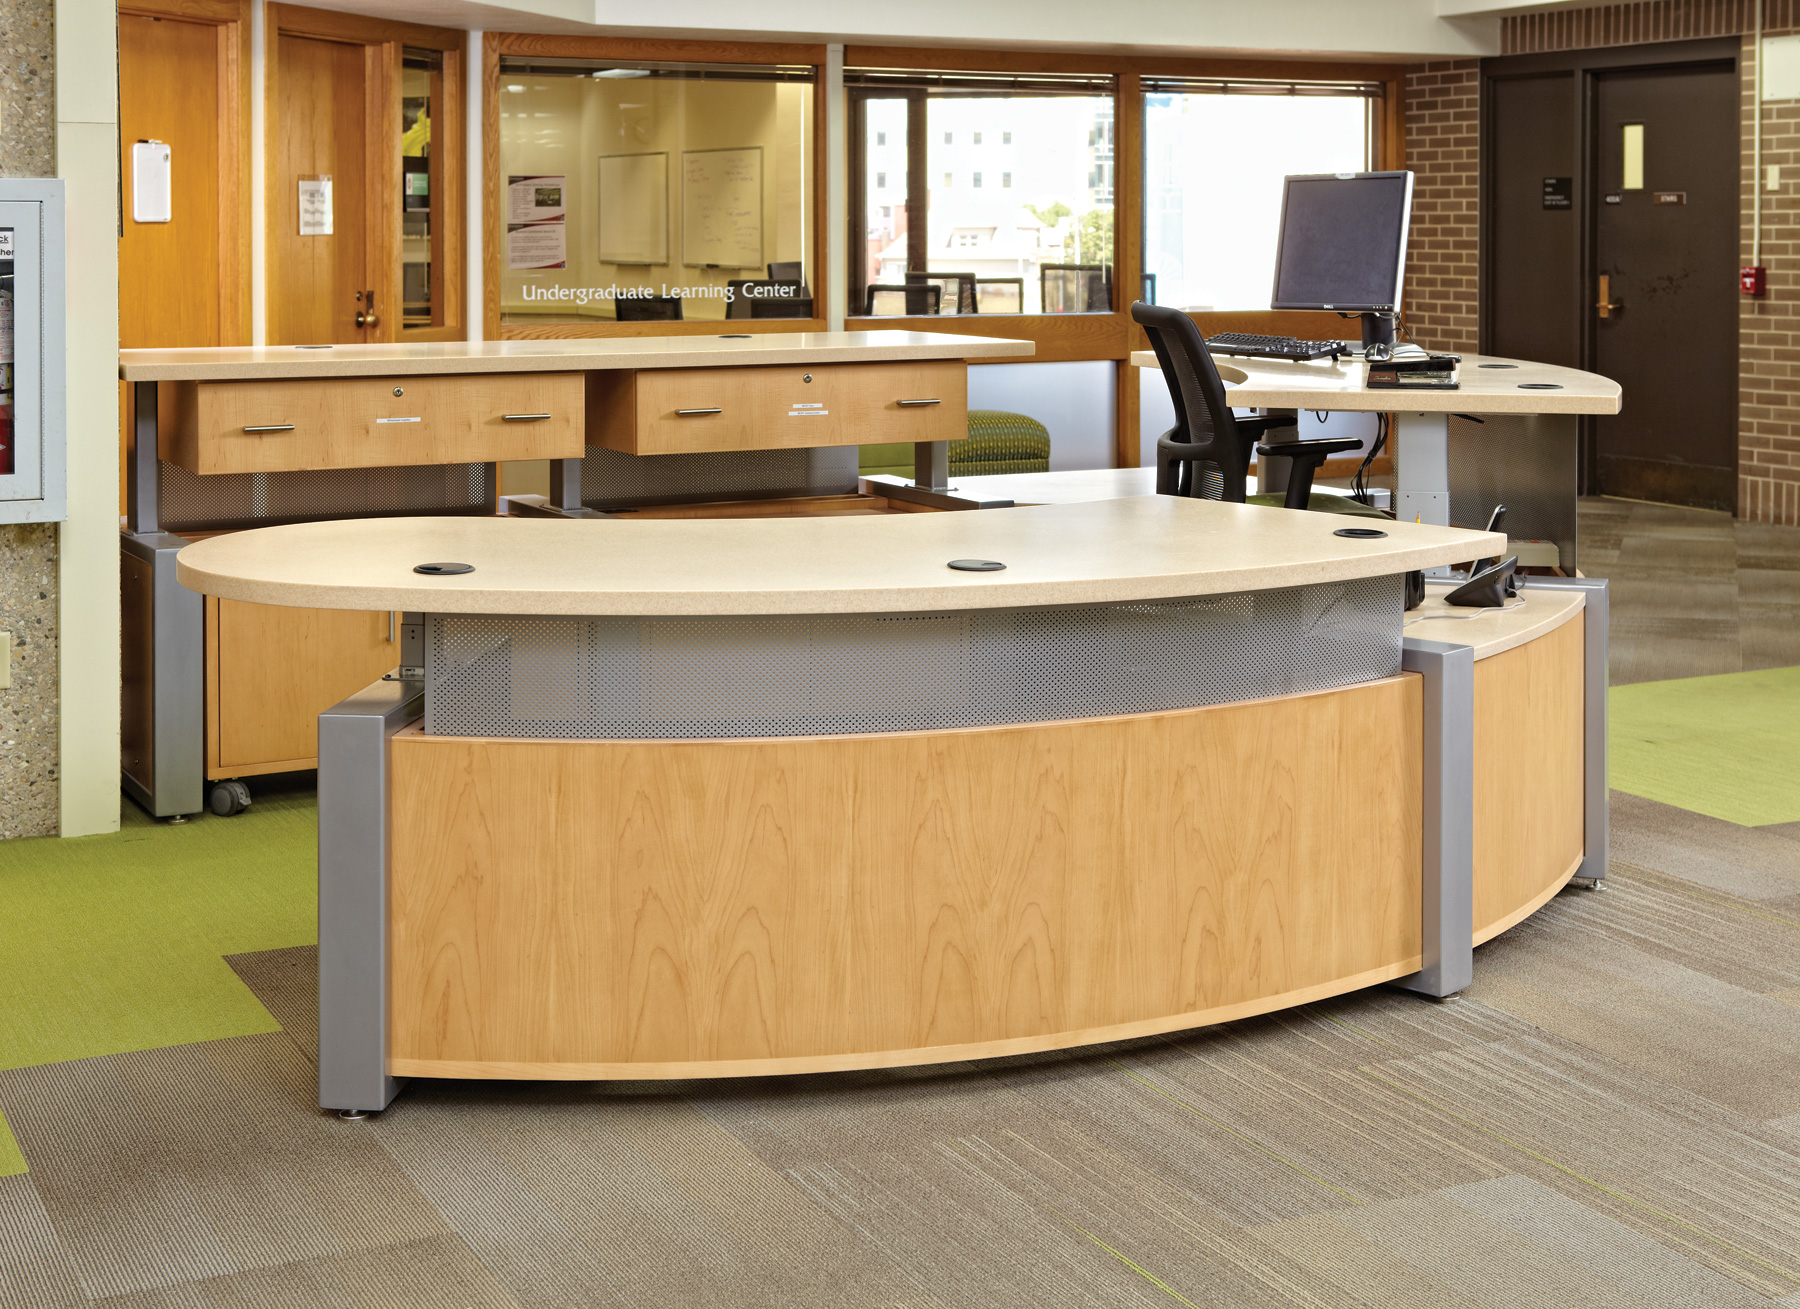 University of Wisconsin-Madison Libraries - Ideas & Inspiration from Demco